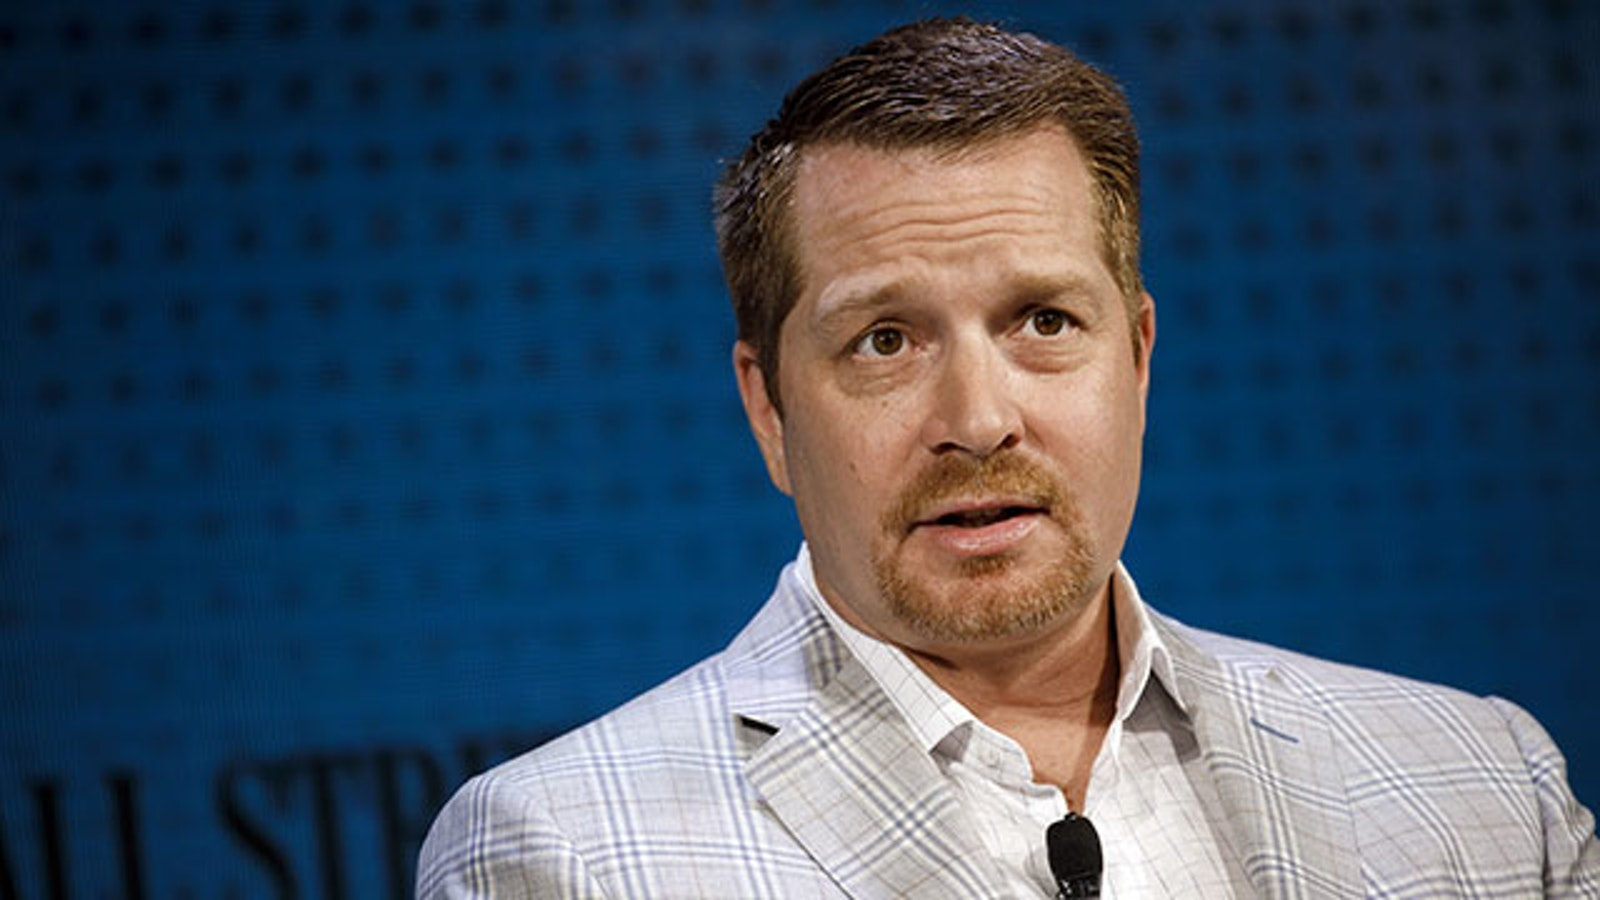 George Kurtz, co-founder and CEO of CrowdStrike. Photo: Bloomberg